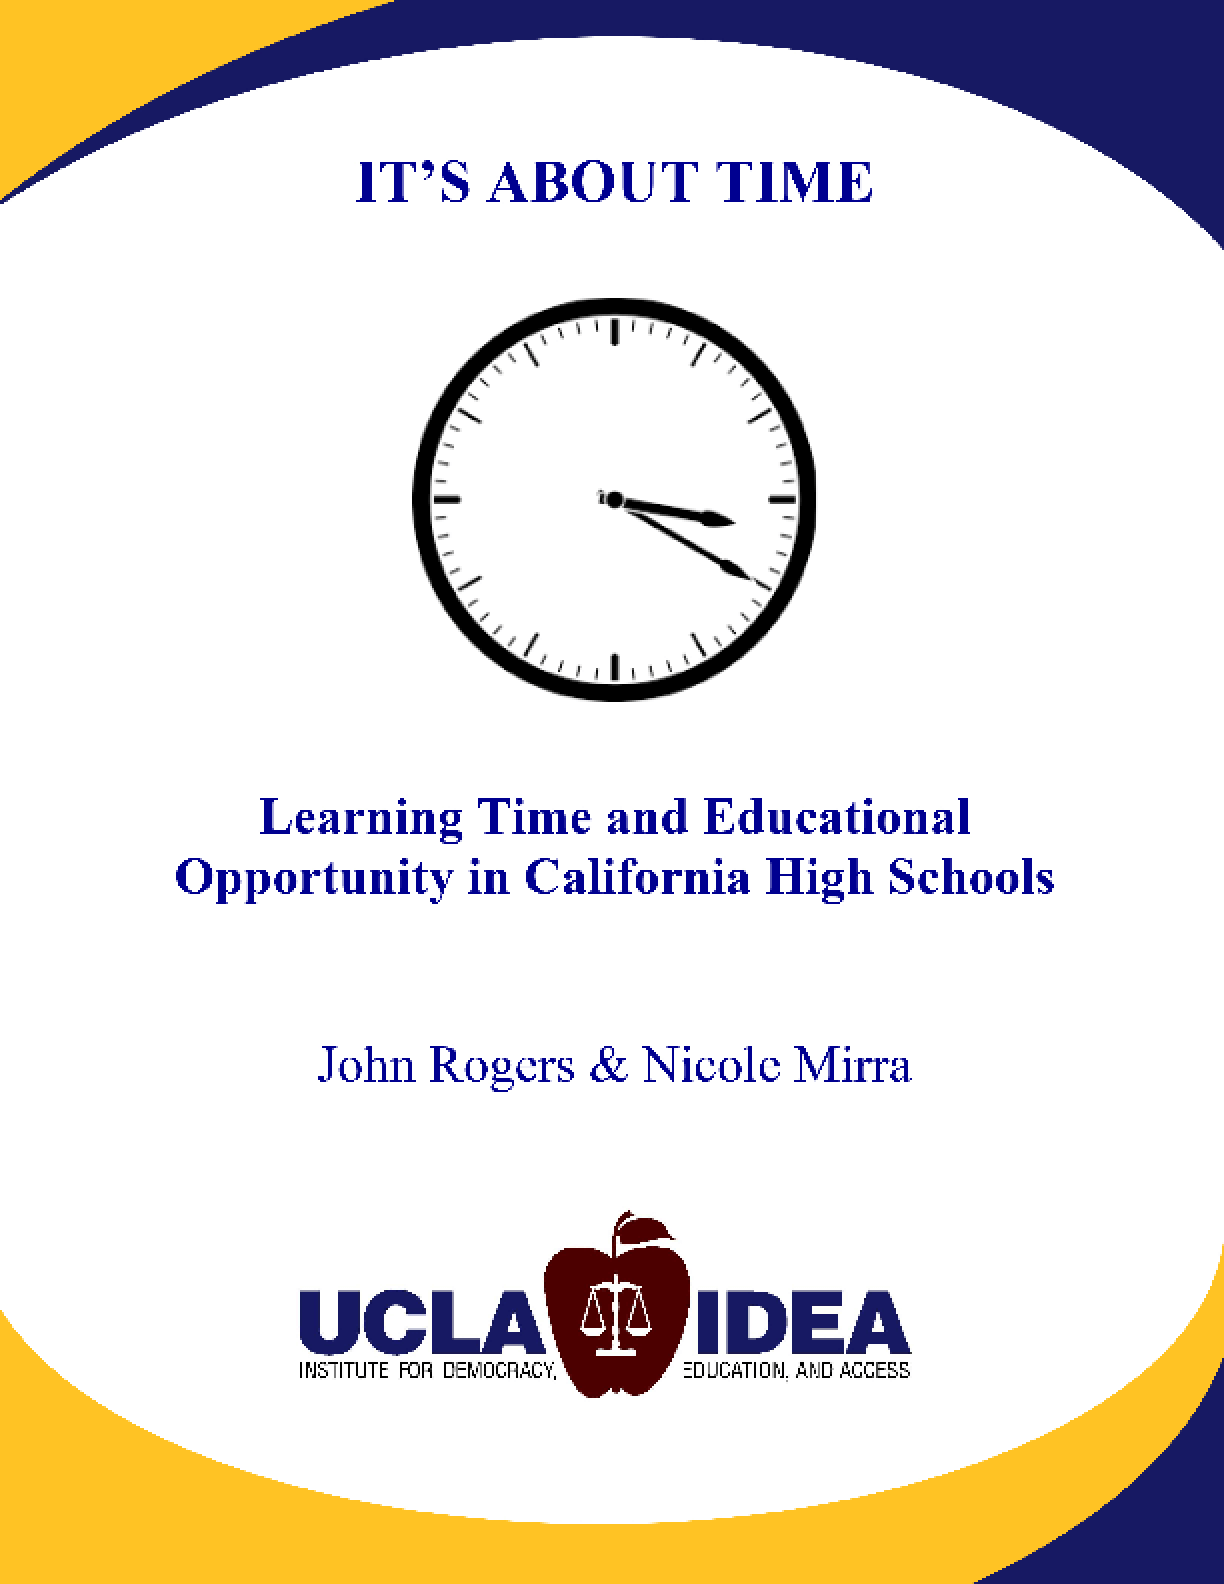 It's About Time: Learning Time and Educational Opportunity in California High Schools